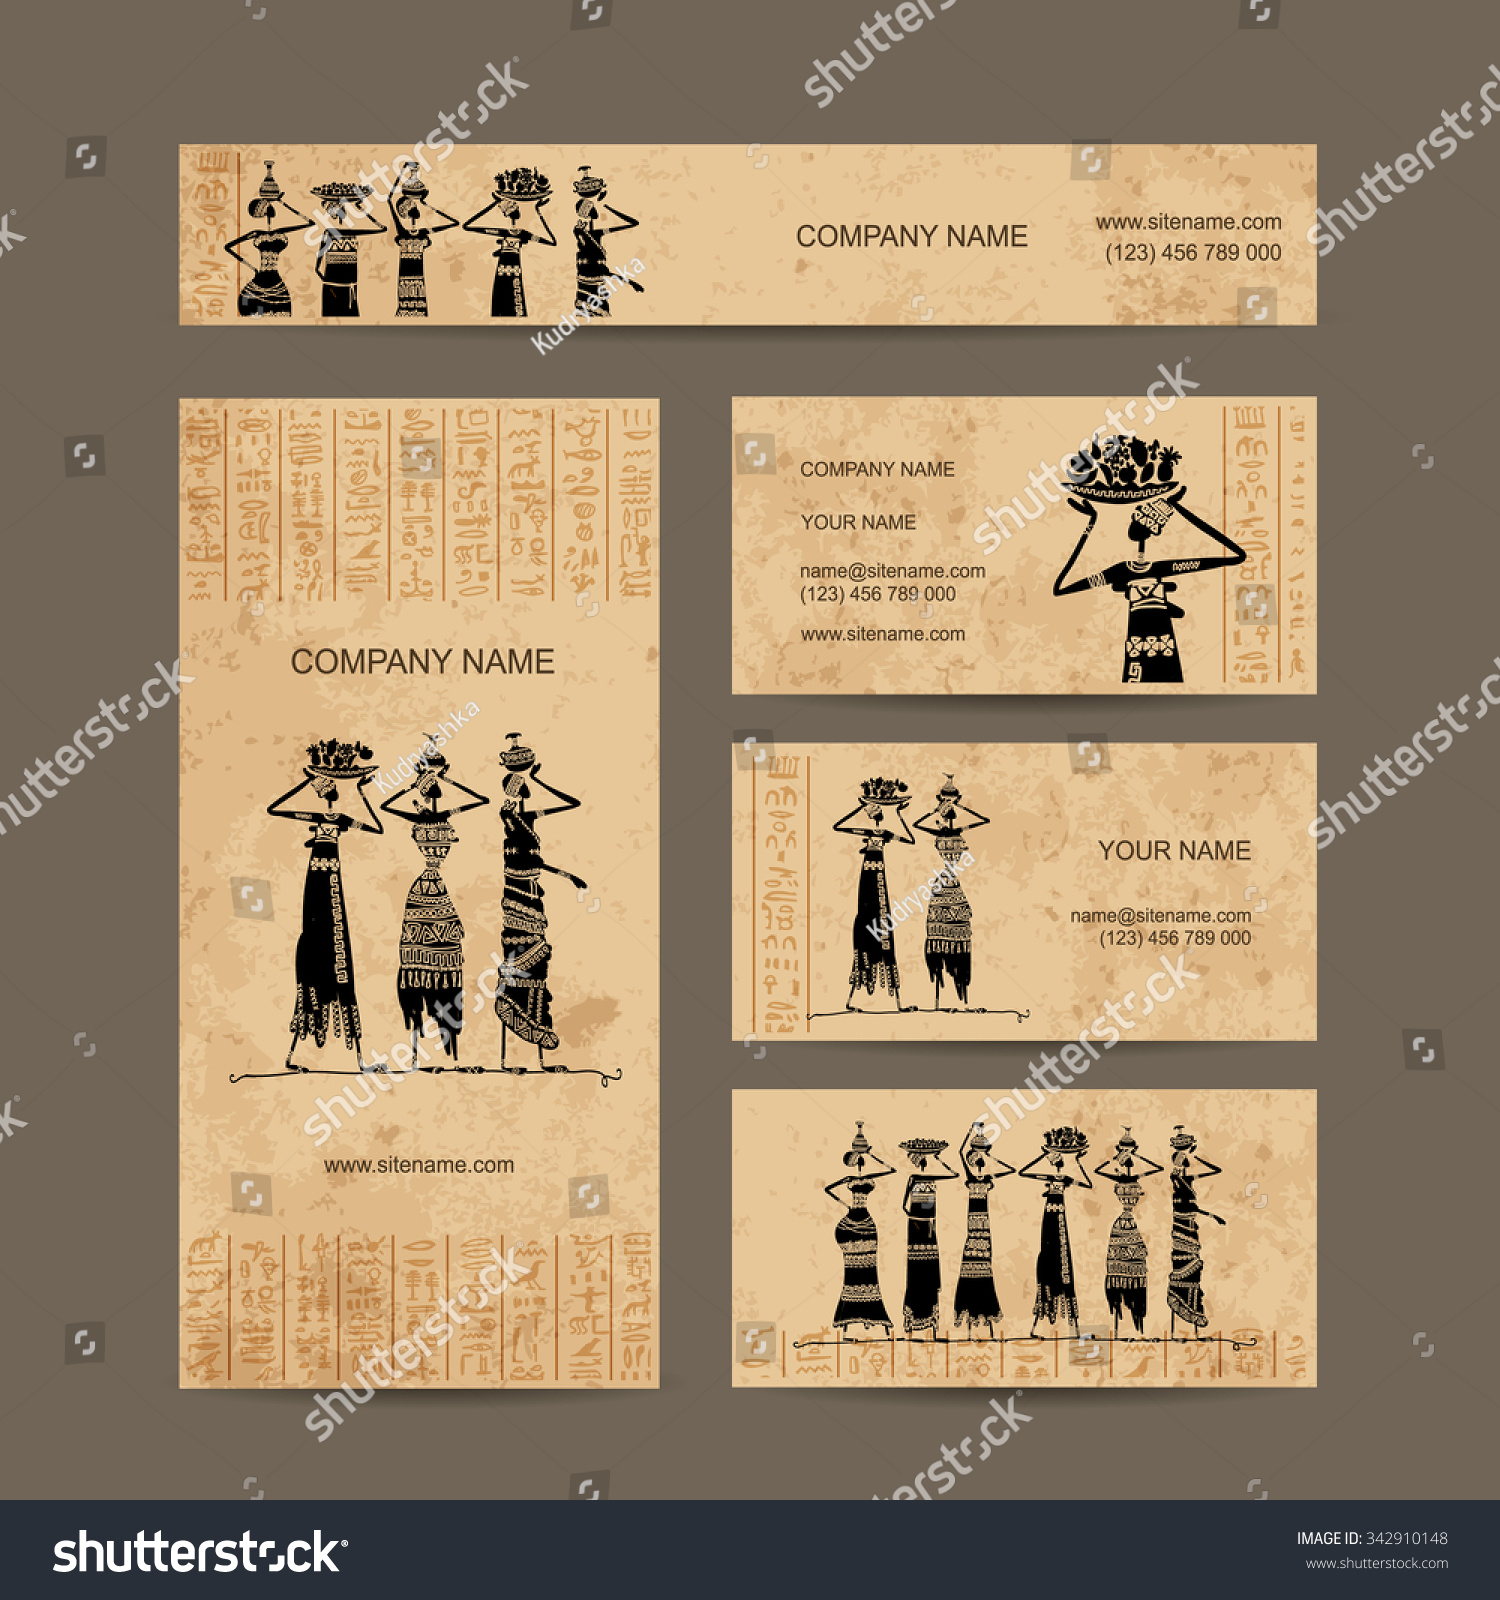 Sketch egypt women jugs business cards stock vector 342910148 sketch of egypt women with jugs business cards design vector illustration colourmoves